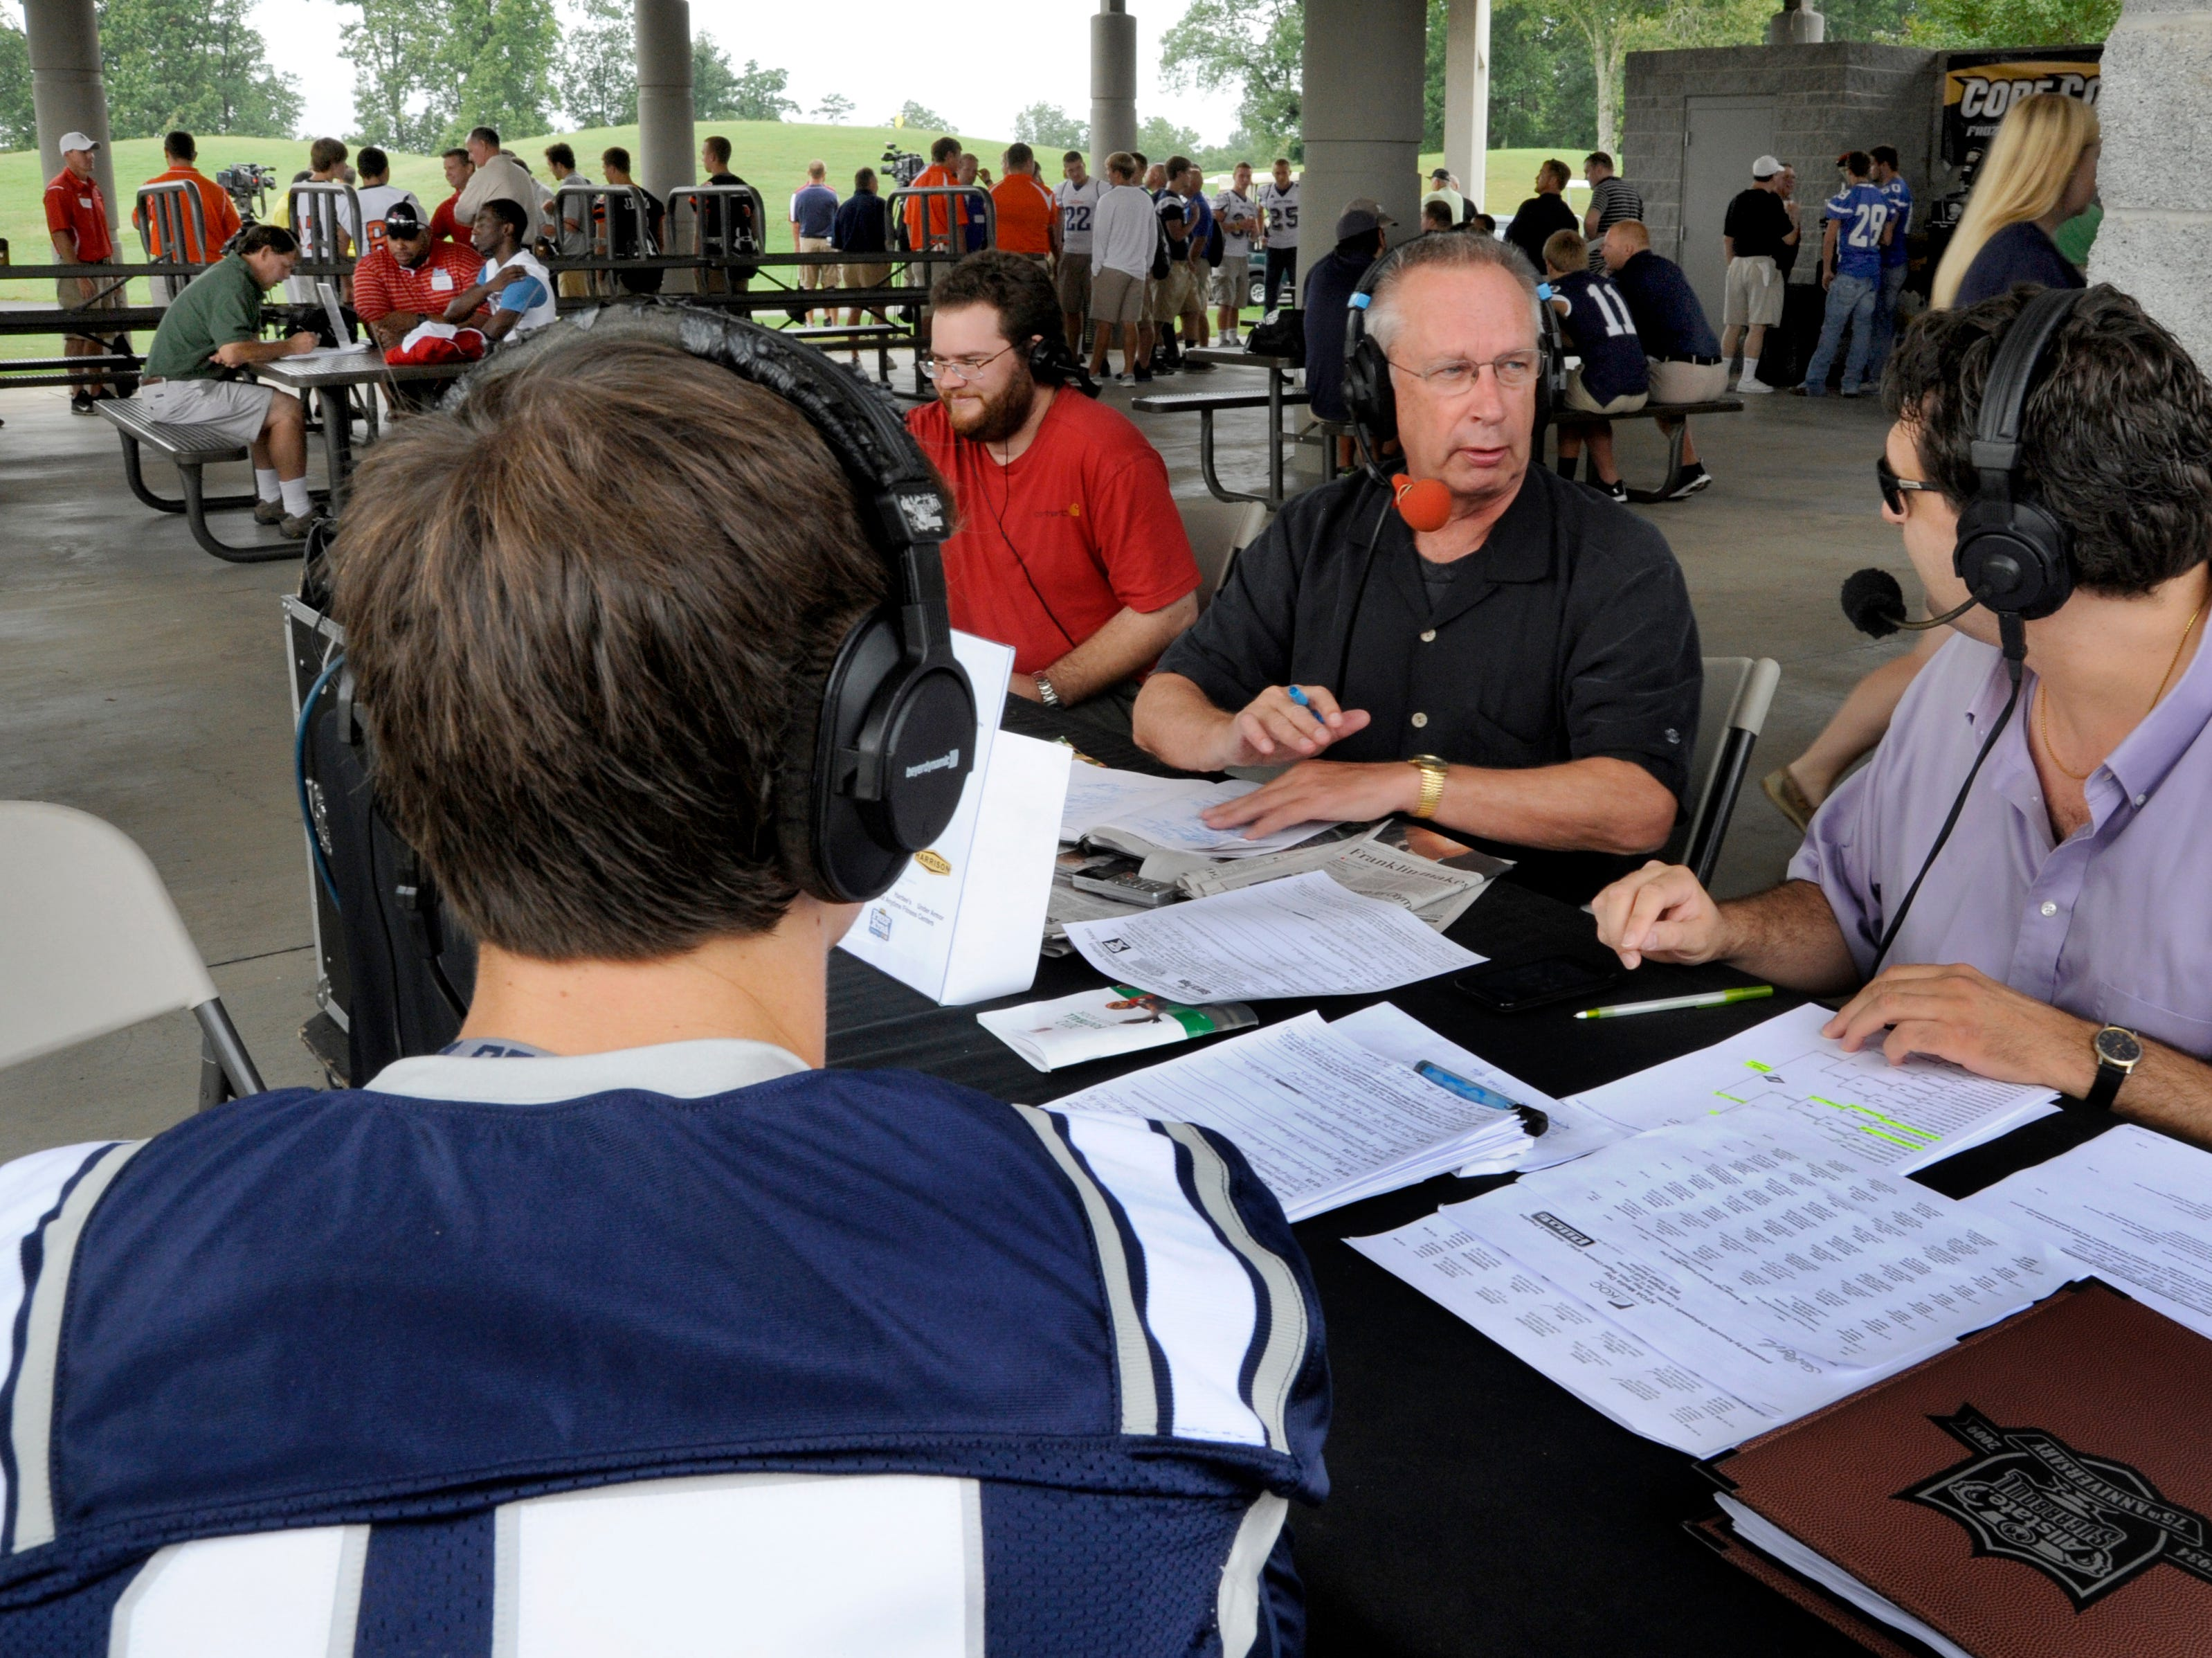 News Sentinel Sports Page hosts Vince Ferrara, right, and John Adams, center, interview Farragut quarterback Jonathan King during the 6th Annual High School Football Media Day on Friday, Jul. 13, 2012, at Three Ridges Golf Course.